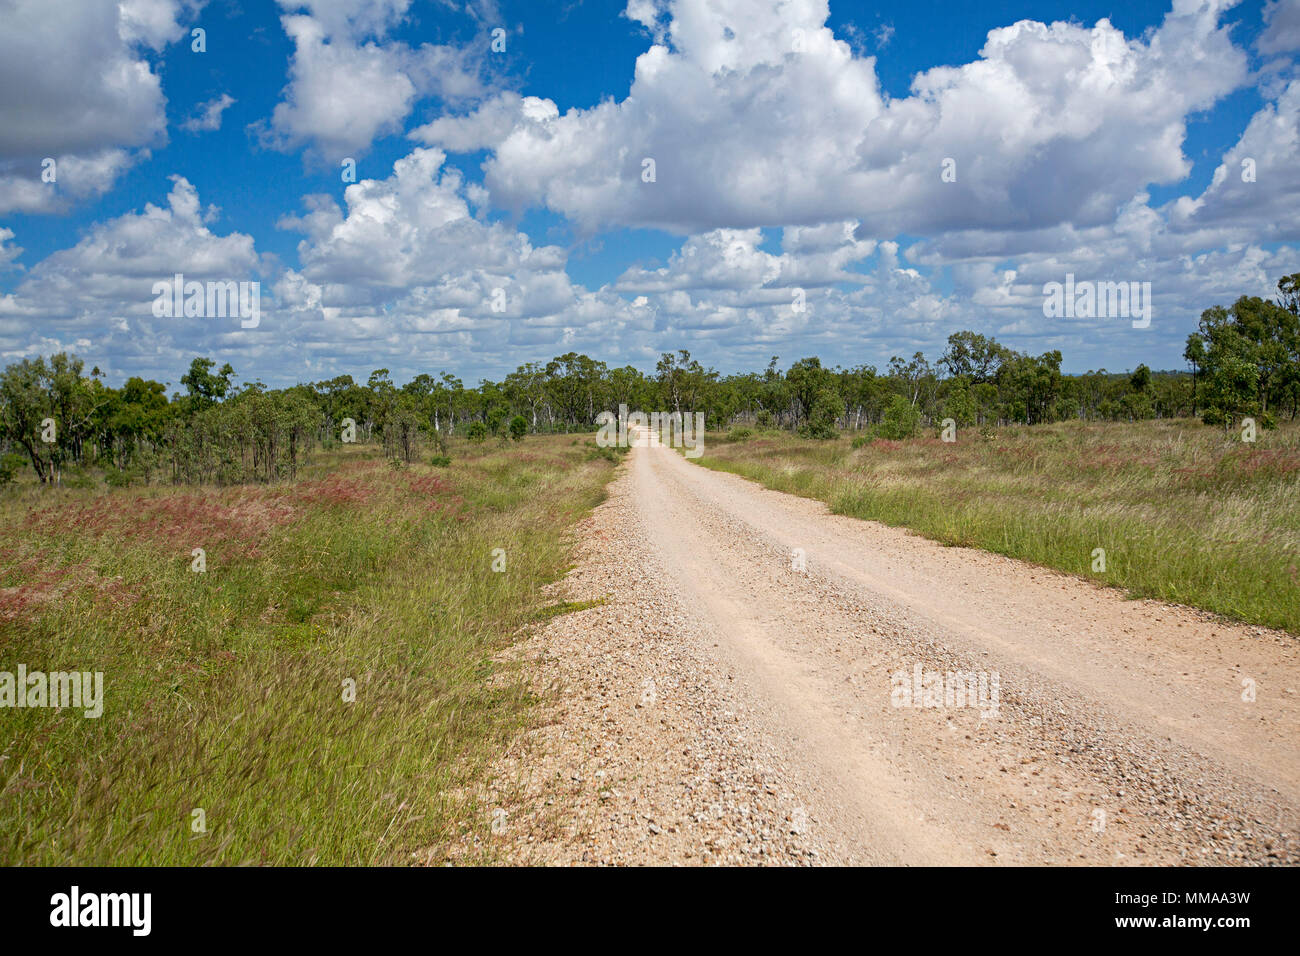 Gravel road slicing through landscape of red and green grasses hemmed by trees under blue sky at Homevale National Park in Queensland Australia - Stock Image